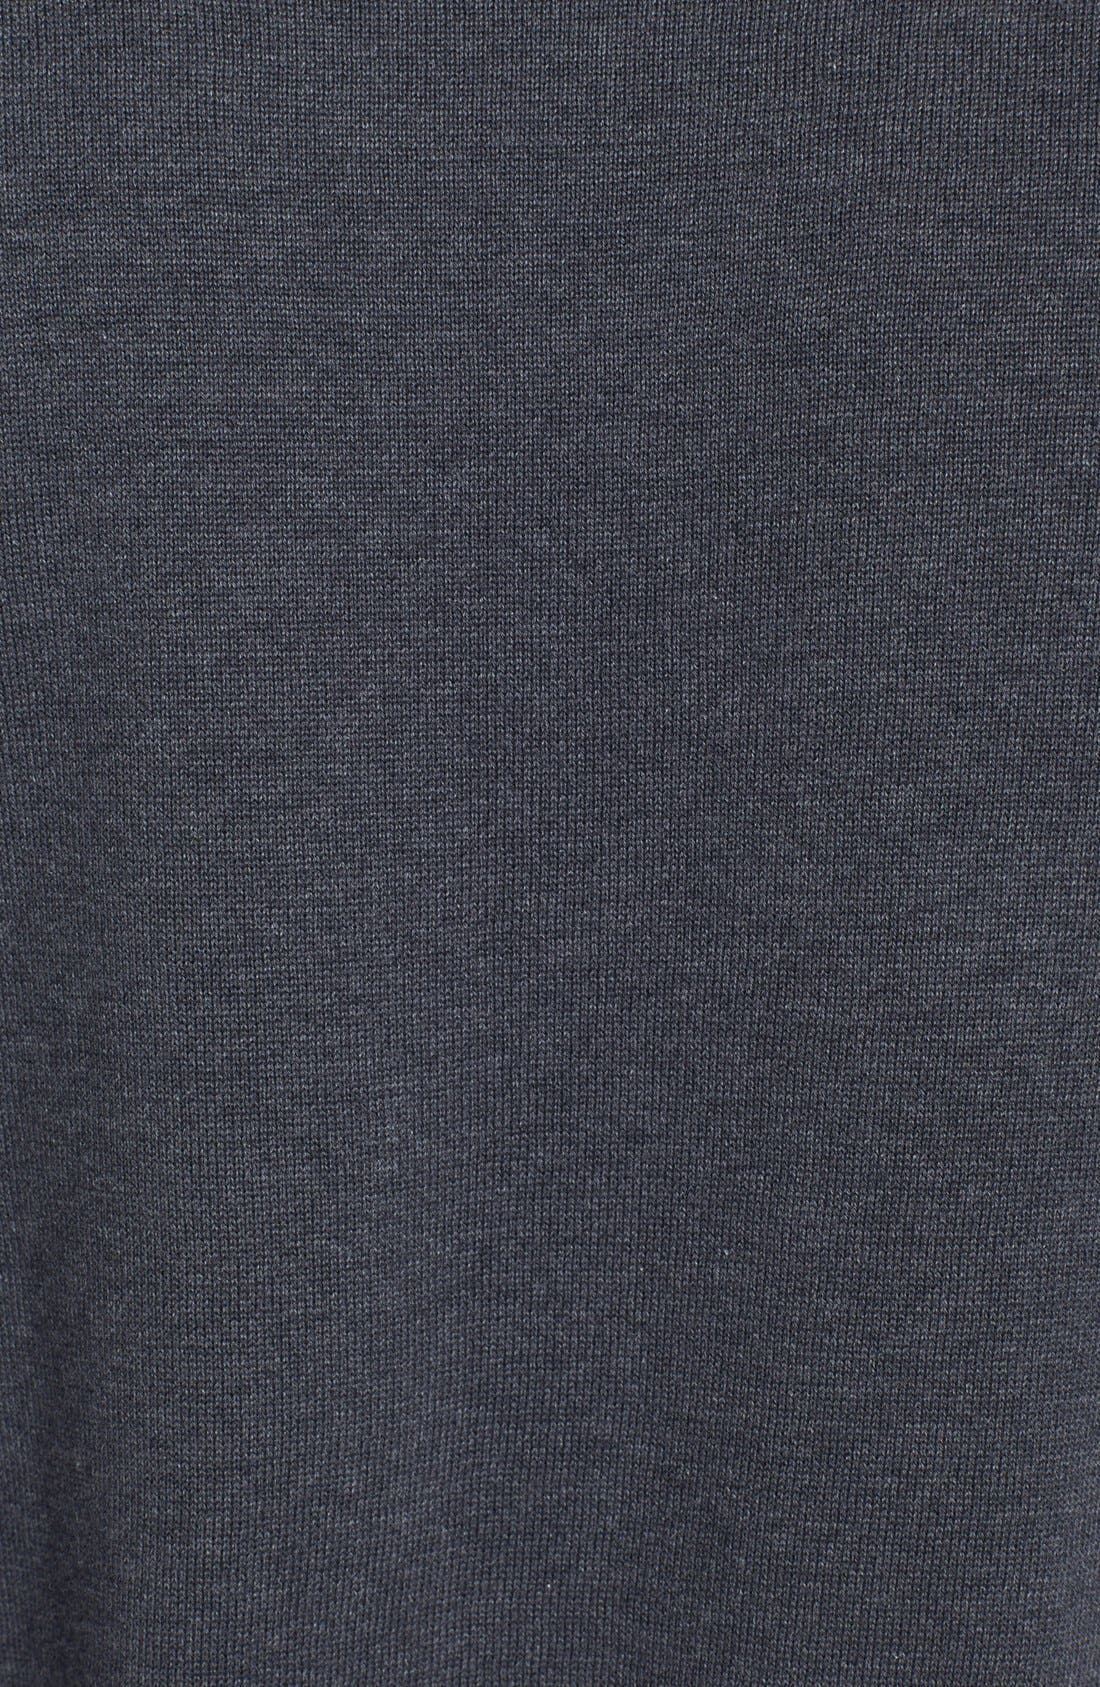 Alternate Image 3  - Zegna Sport Water Repellent Crew Neck Sweater